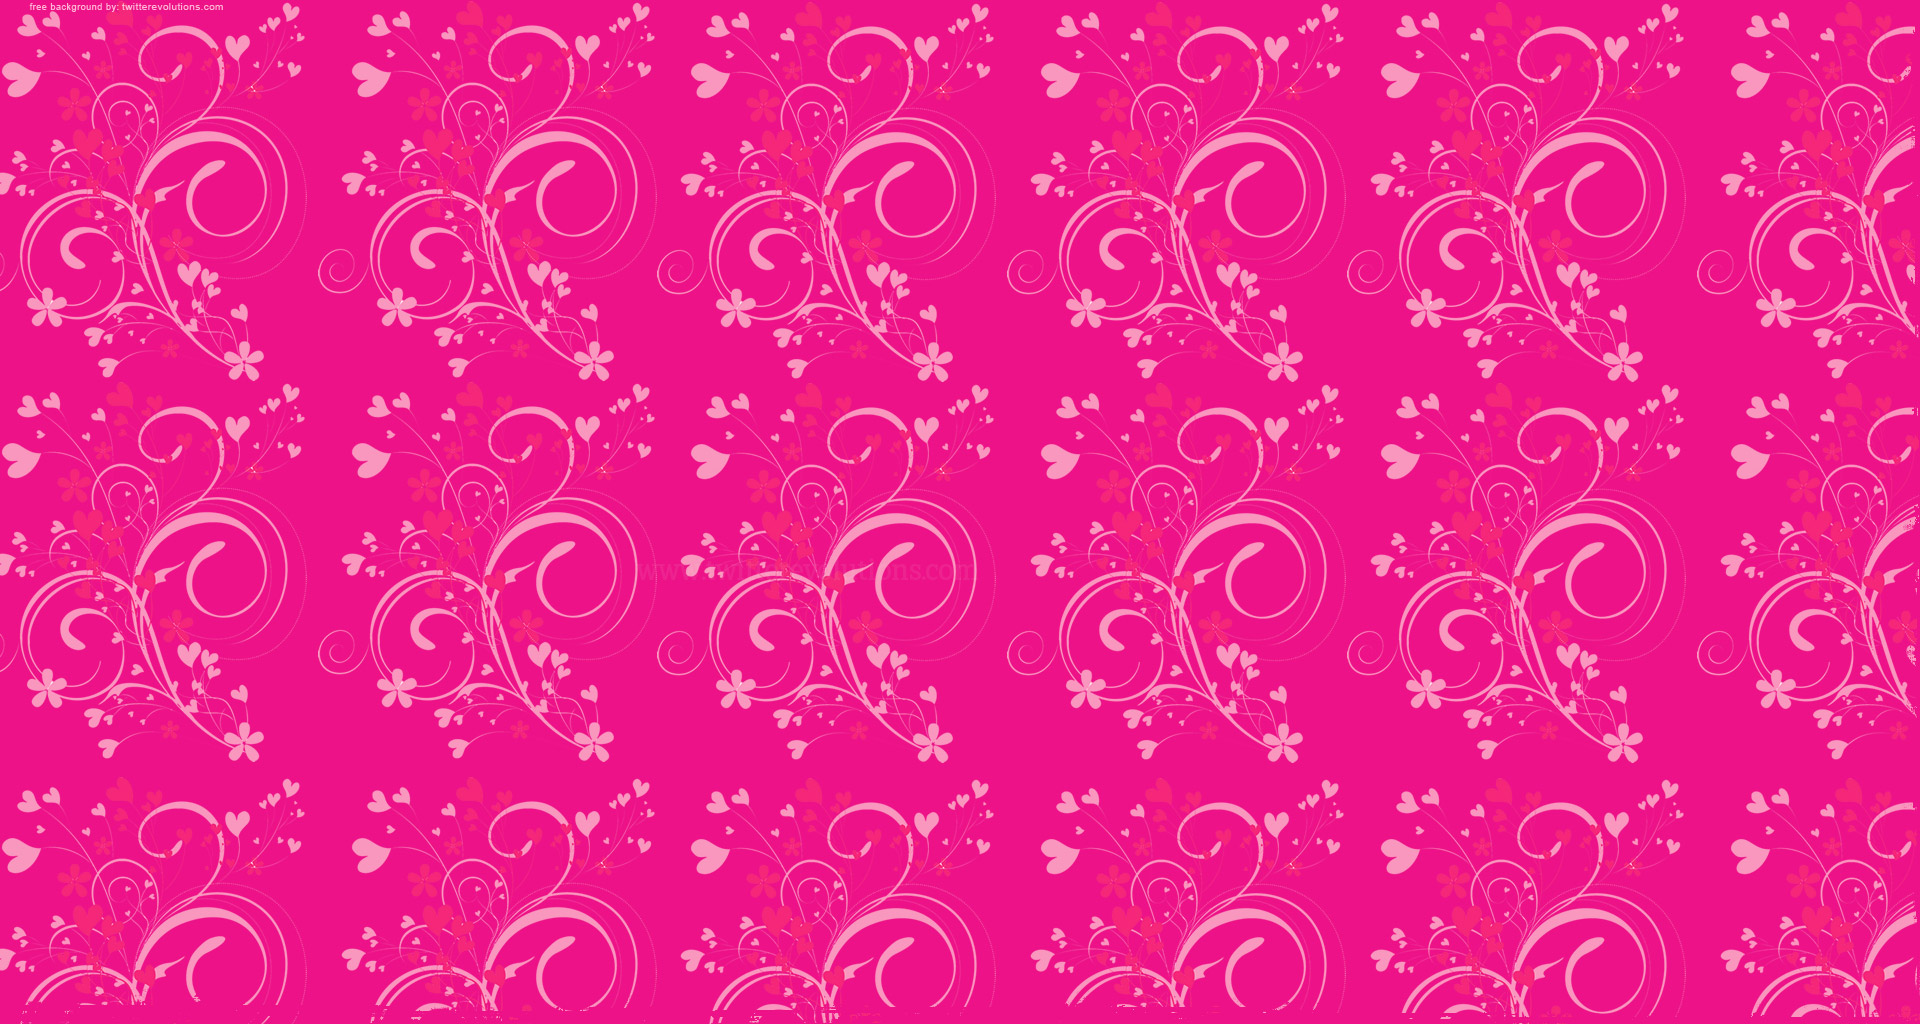 Pictures Of Pink Floral Background For Twitter